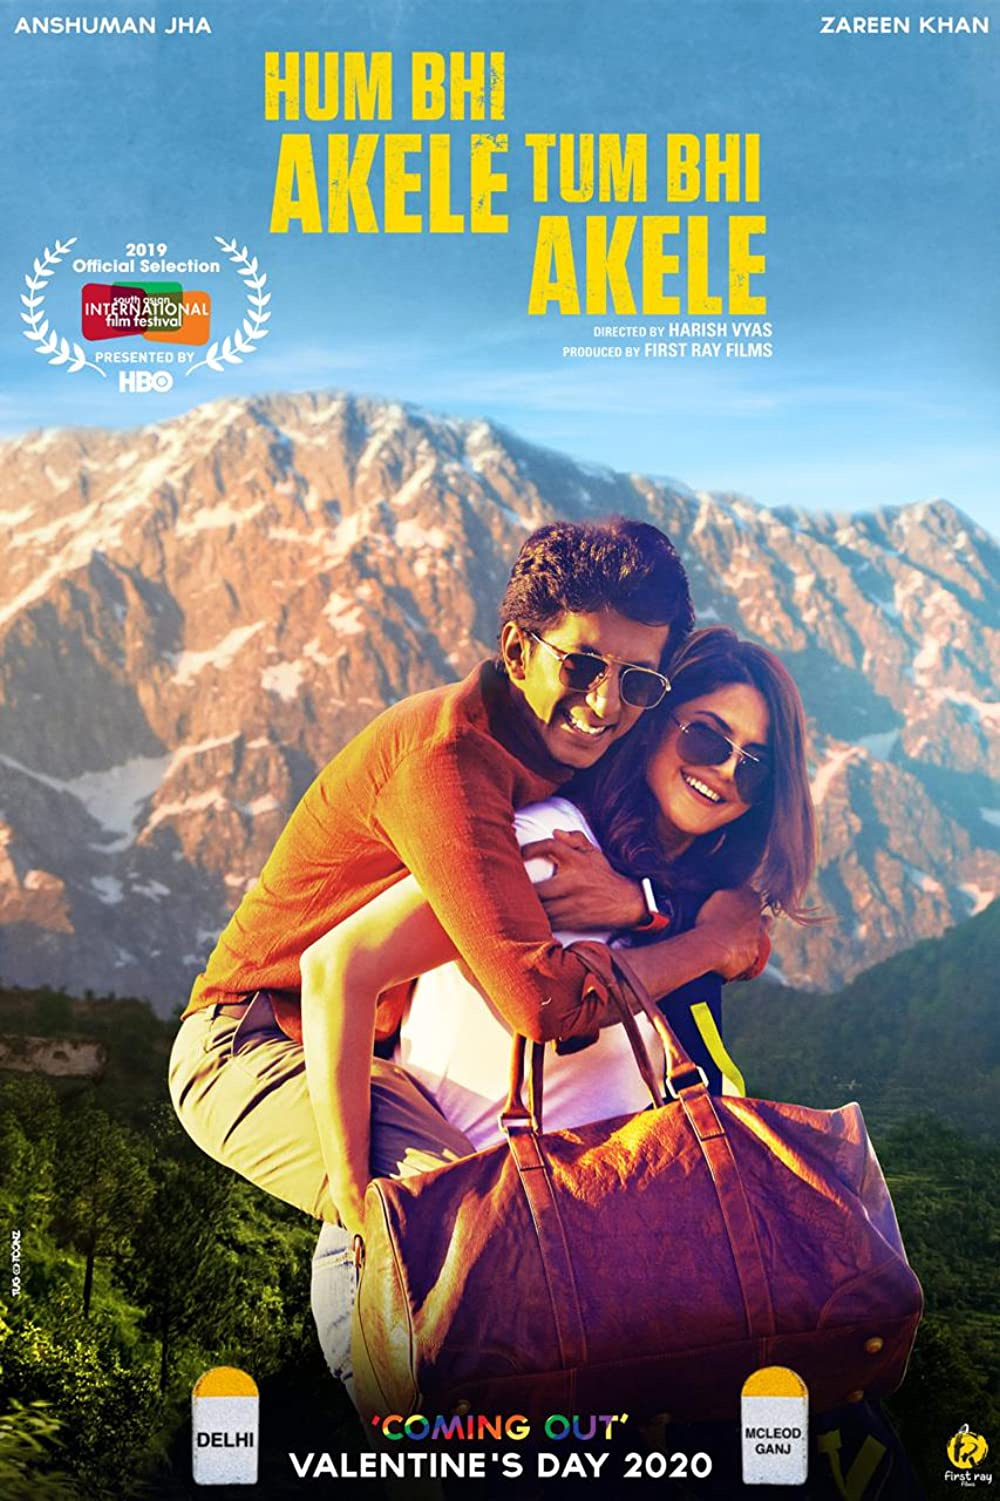 Hum Bhi Akele Tum Bhi Akele 2021 Hindi Movie Official Trailer 1080p HDRip 43MB Download